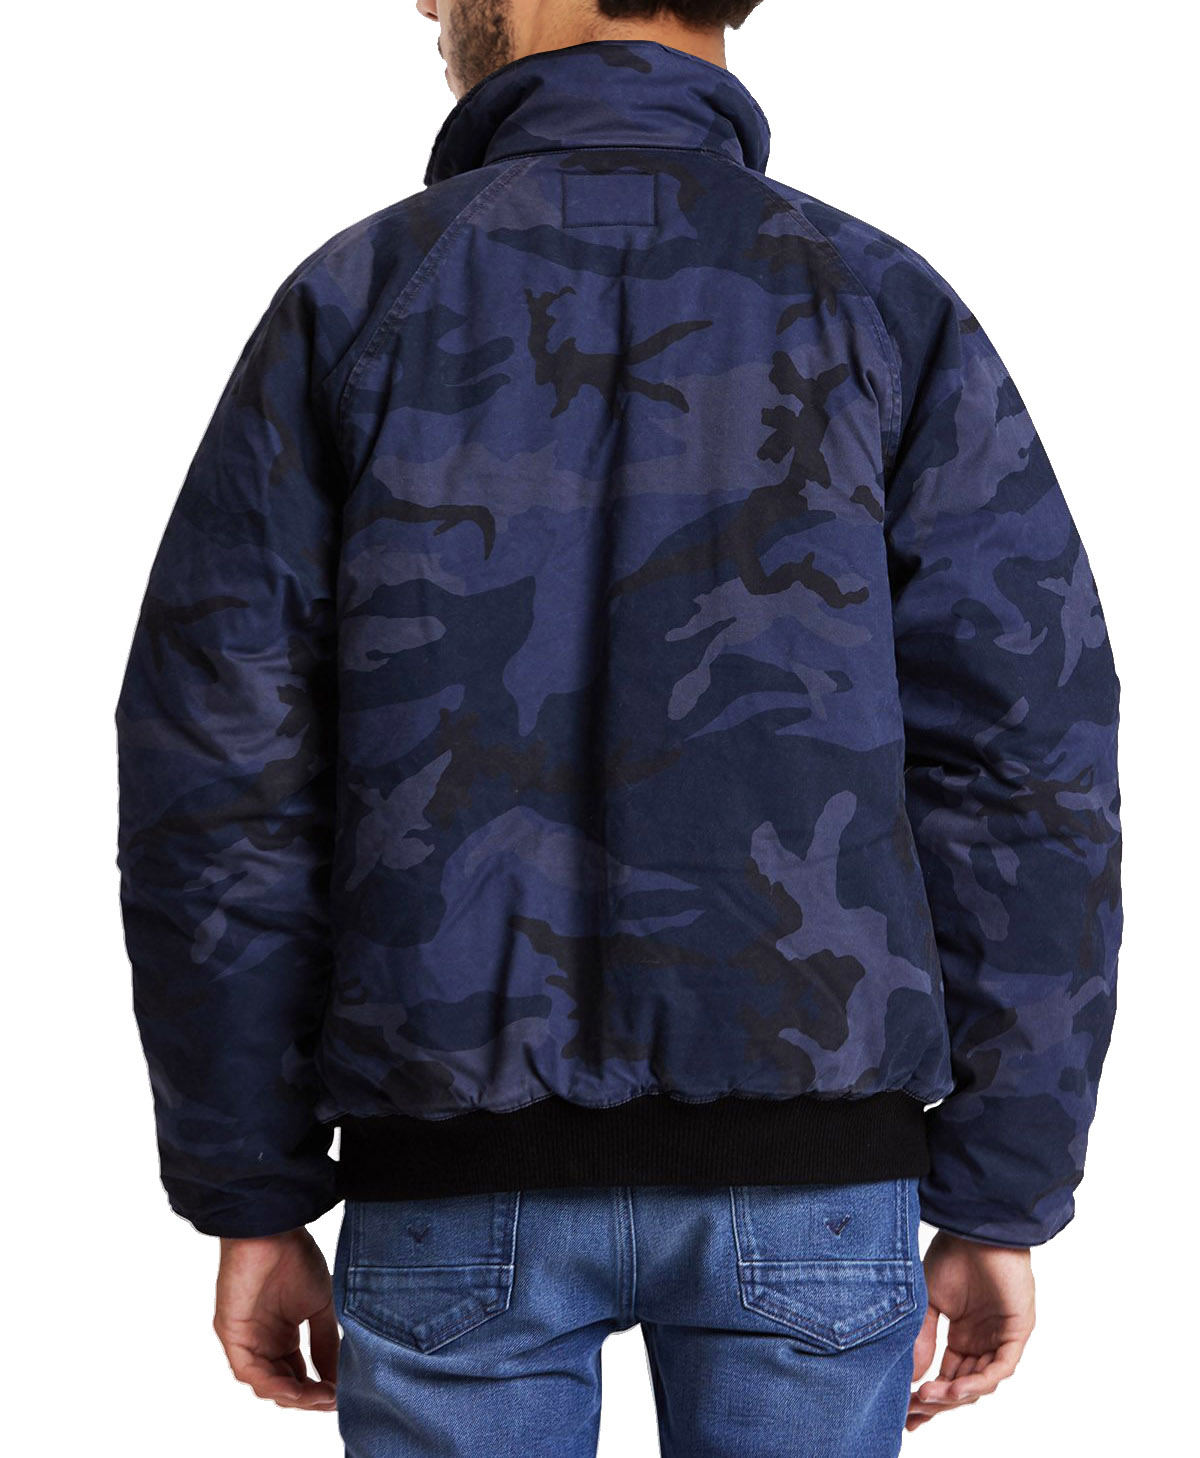 Hudson-Jeans-Blue-Camo-Army-Casual-Full-Zip-amp-Snap-Button-Front-Bomber-Jacket thumbnail 4